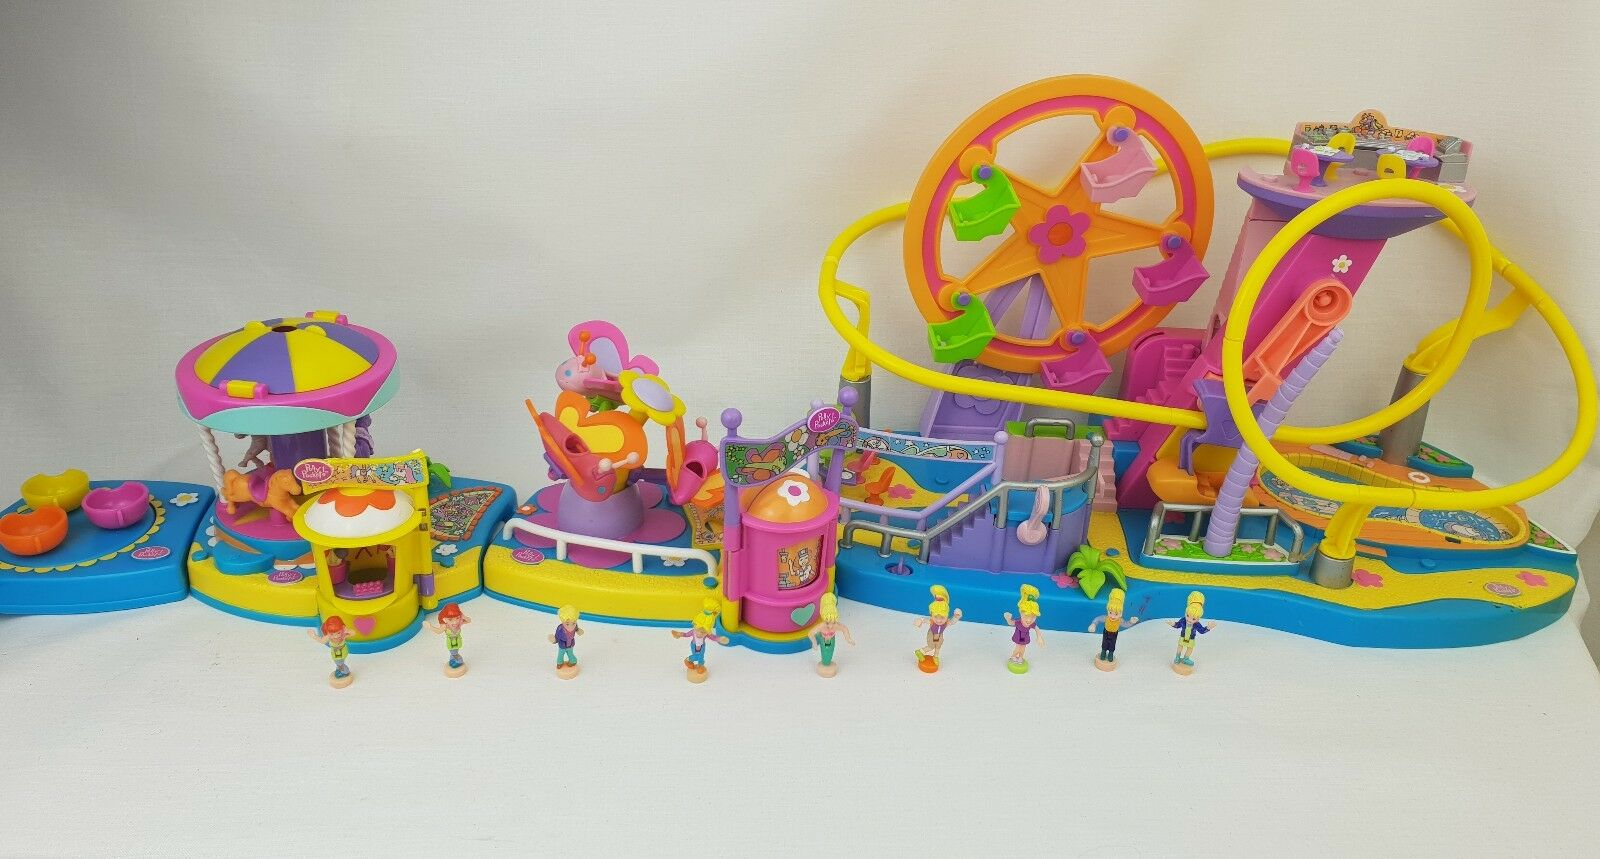 Vintage polly pocket Amusement park Carousel Butterfly ride Figures 2000 .....